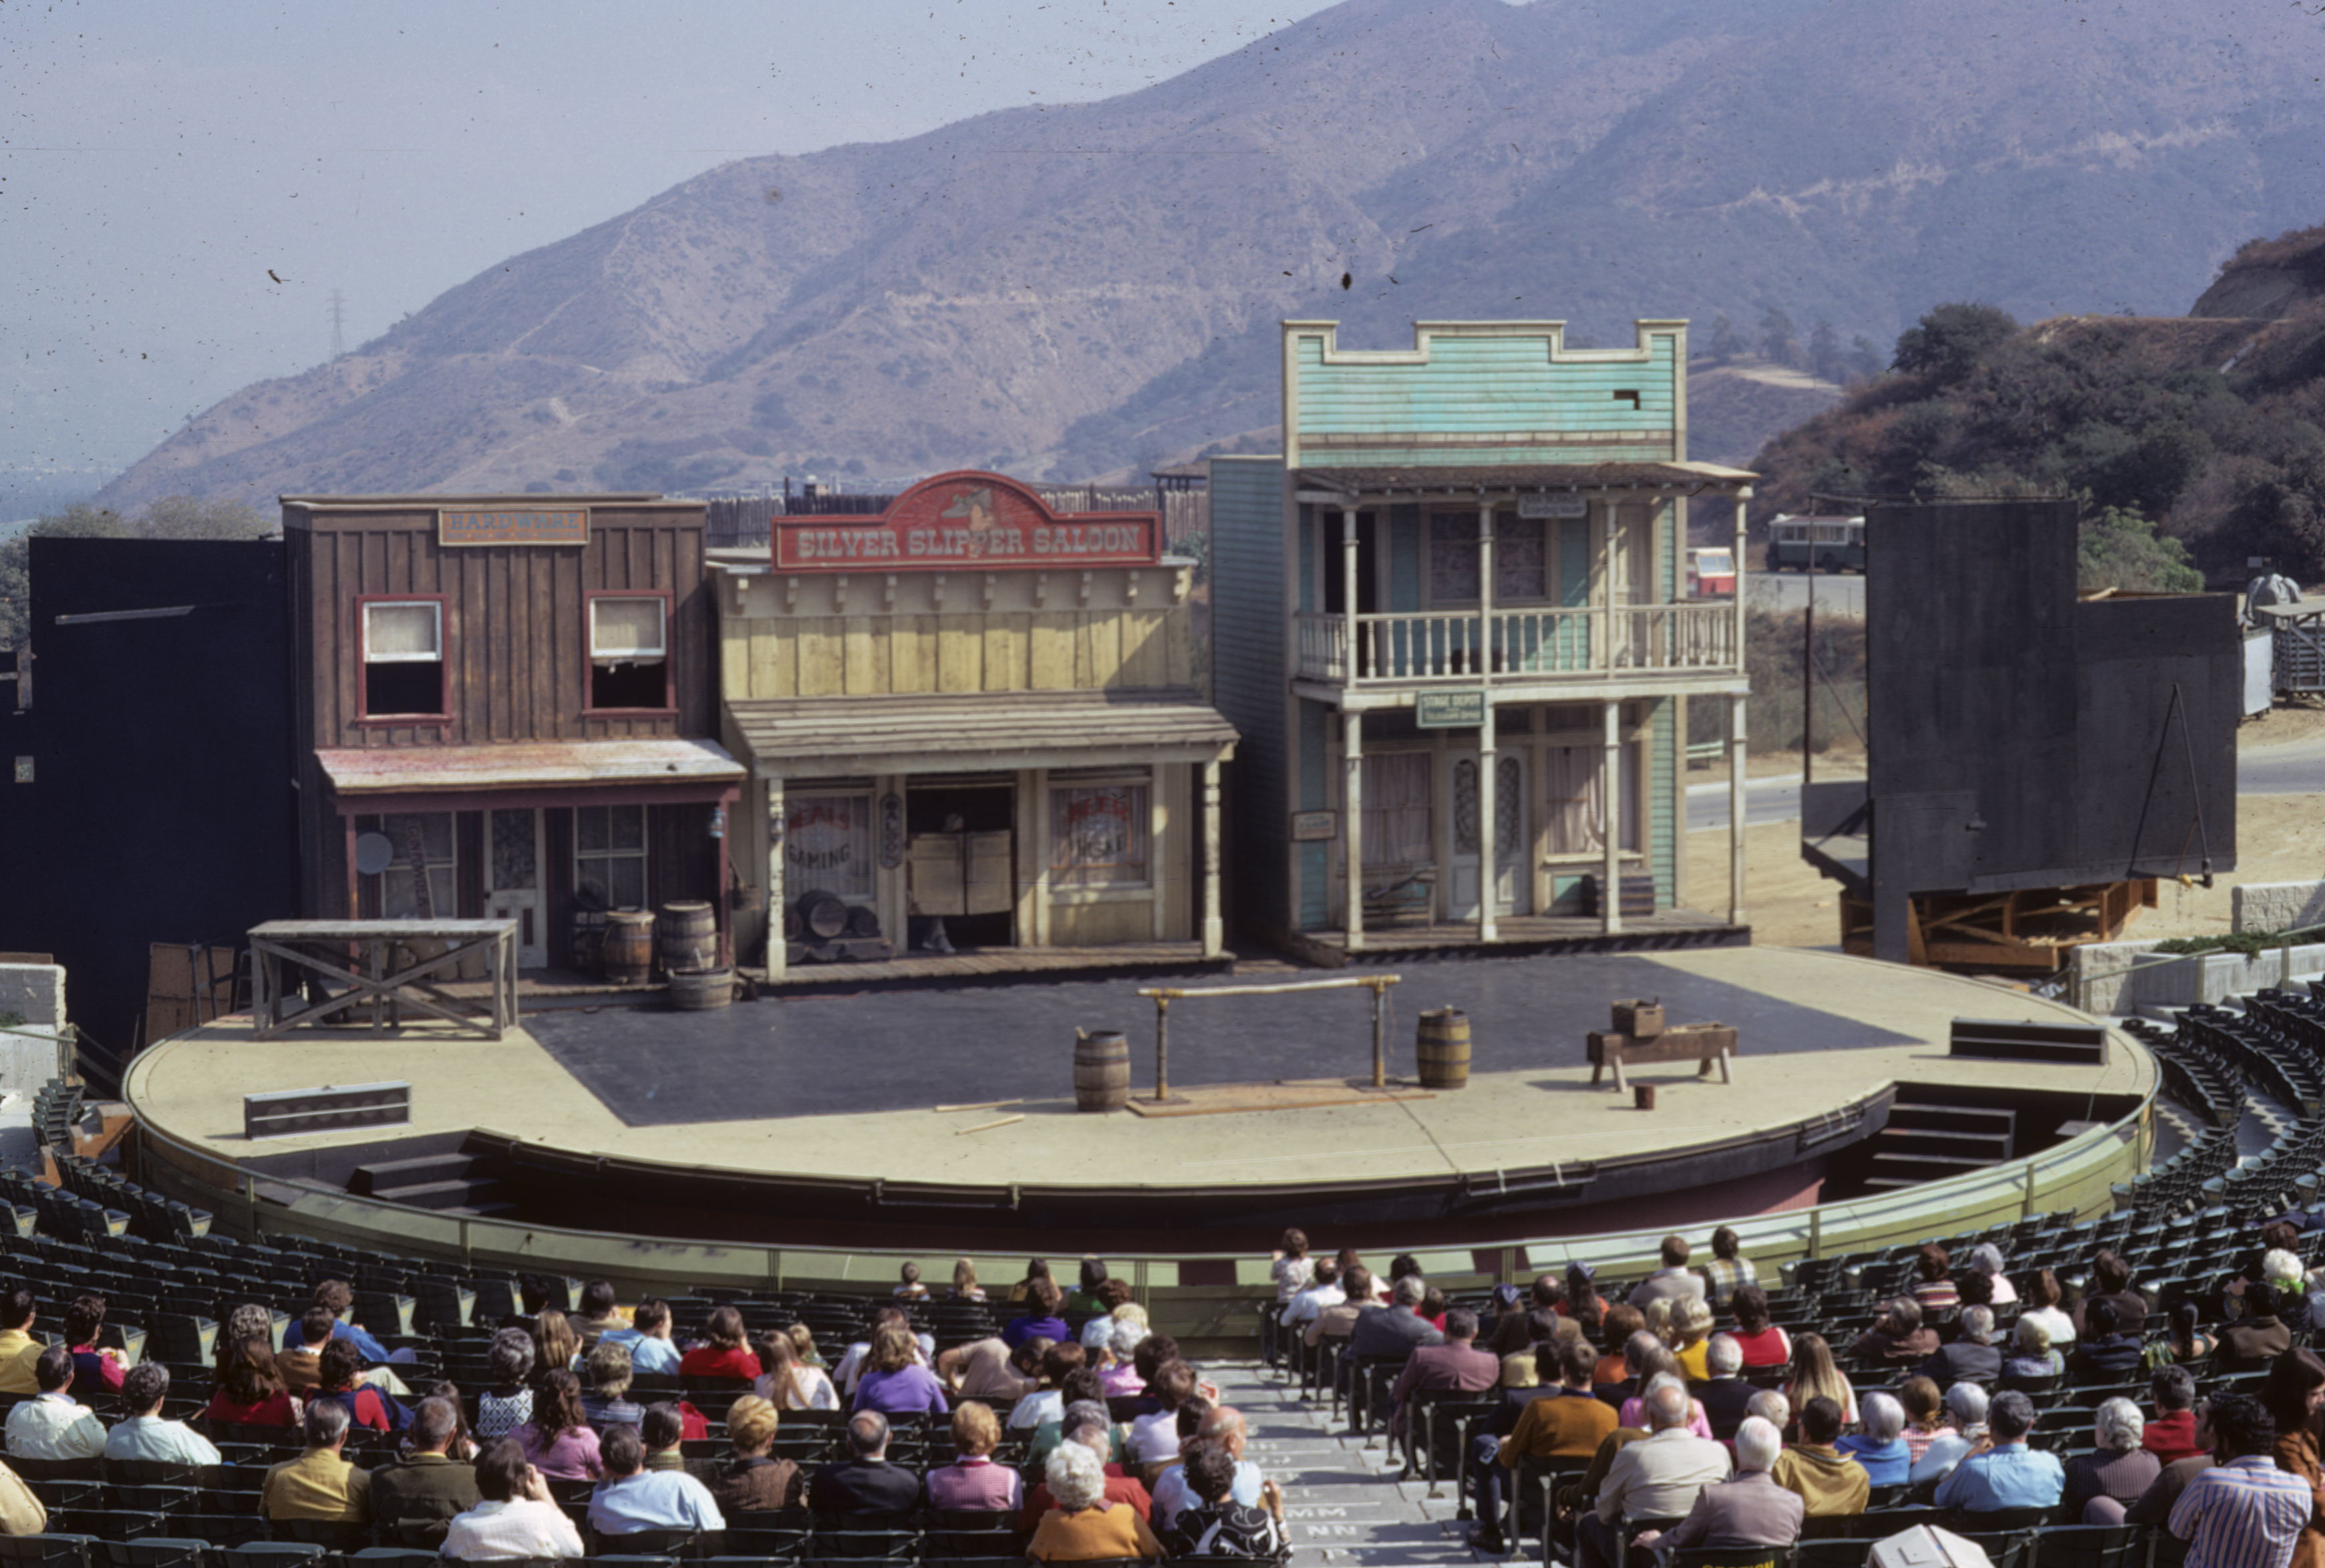 Universal Studios 1972 - Western Show with Stunt Men